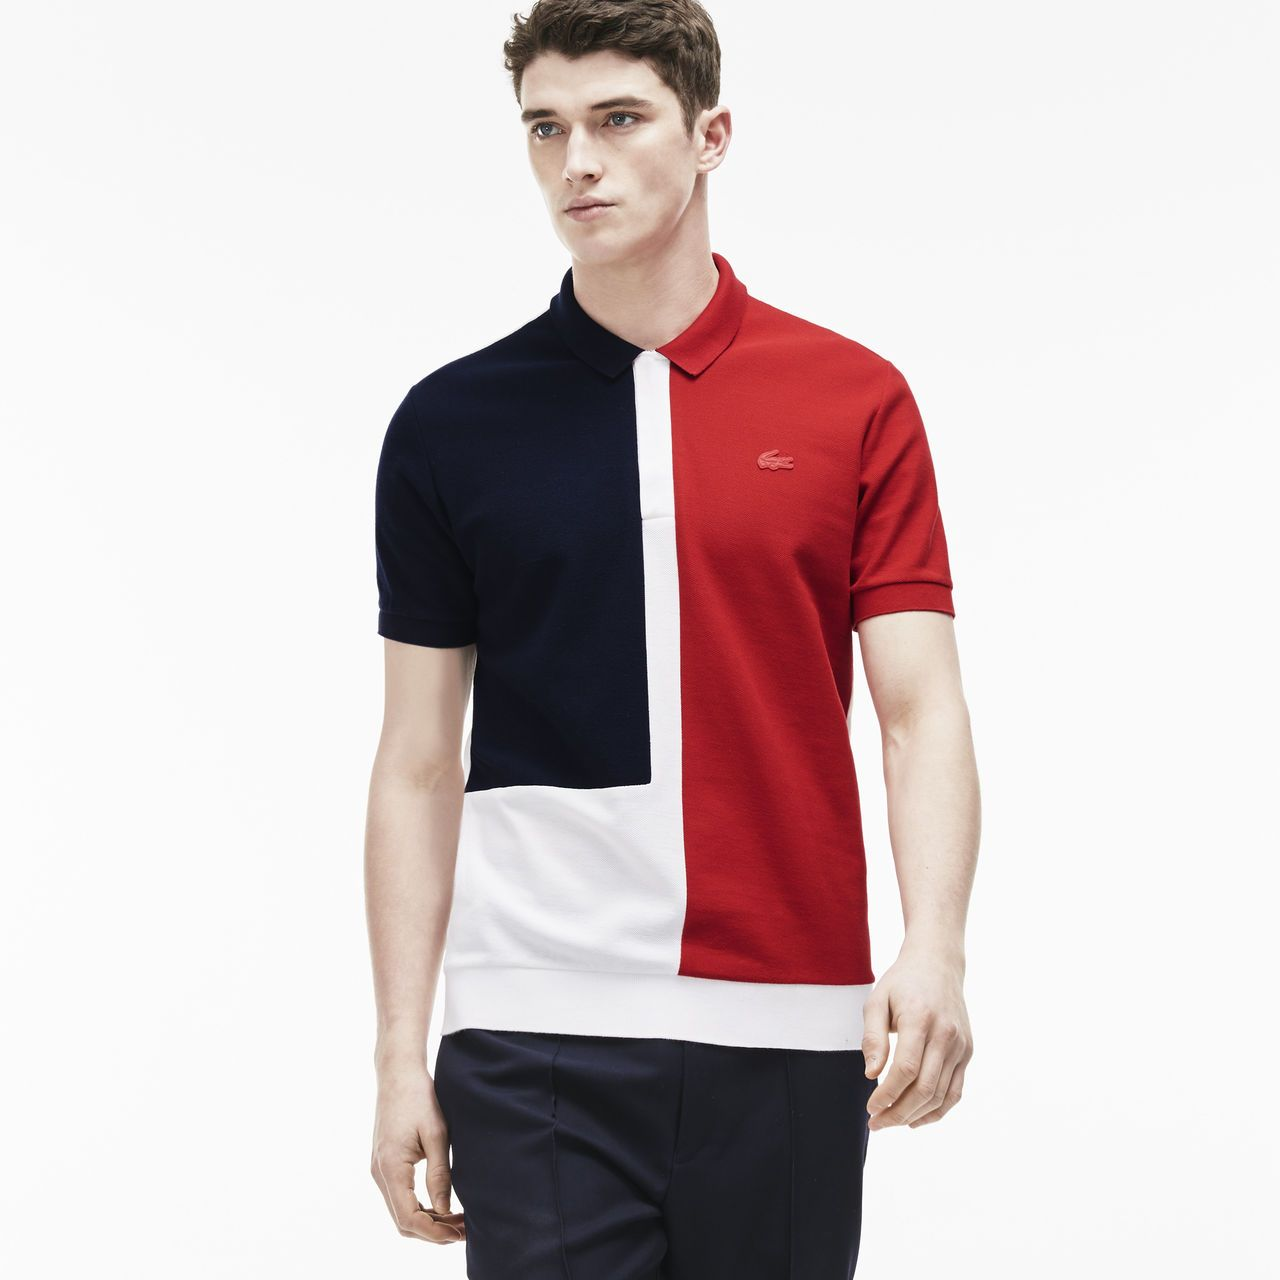 ed1e56c639a0 Lacoste France Fashion show zippered polo in color block noppe piqué ...